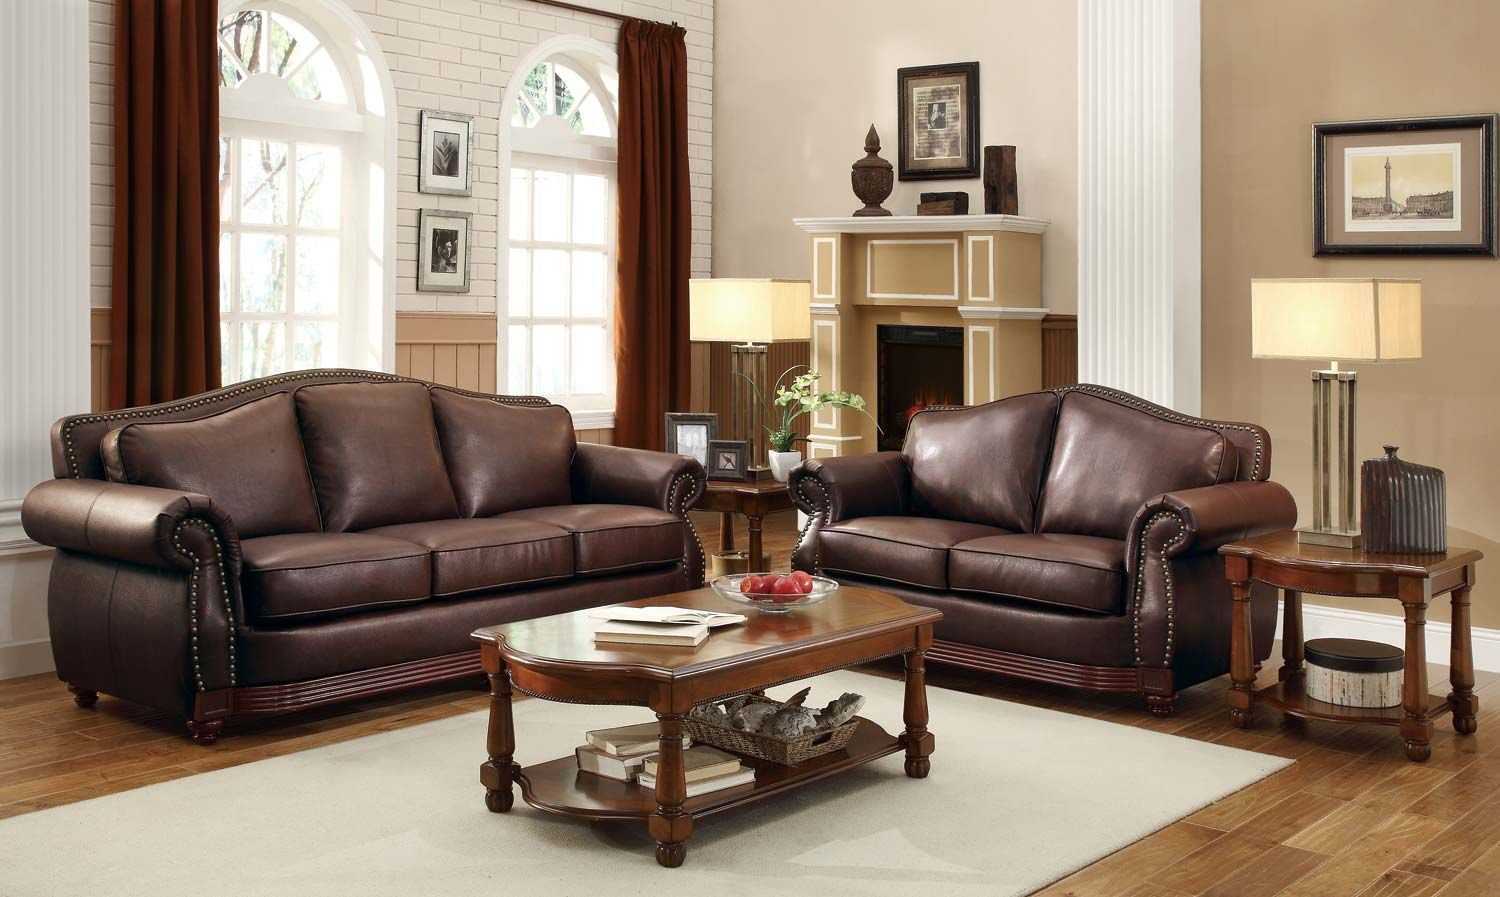 fancy brown sectional sofas ideas-Modern Brown Sectional sofas Wallpaper